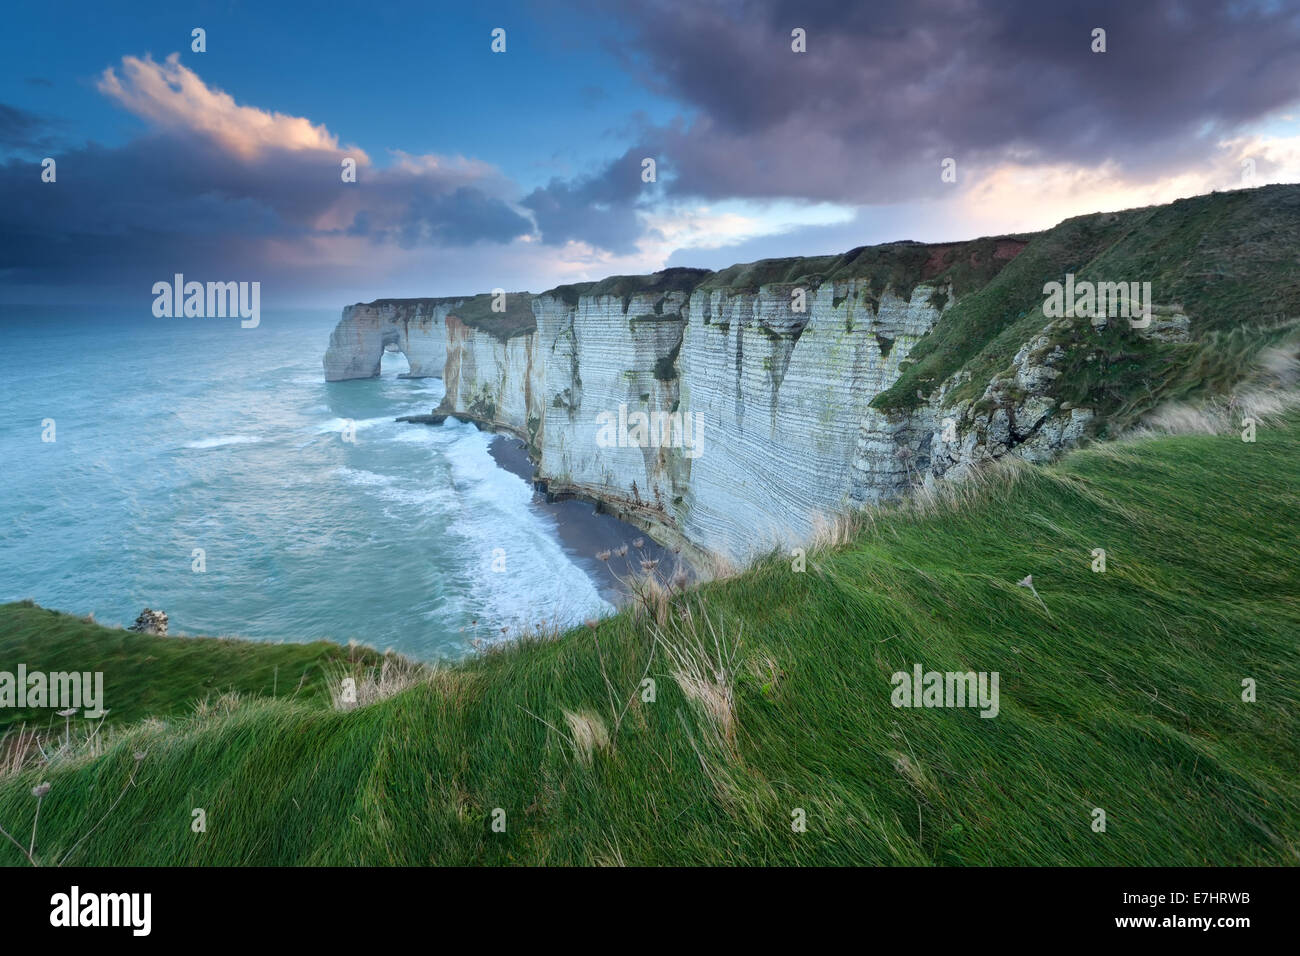 sunrise over Atlantic ocean rocky coast, Etretat, Normandy, France - Stock Image